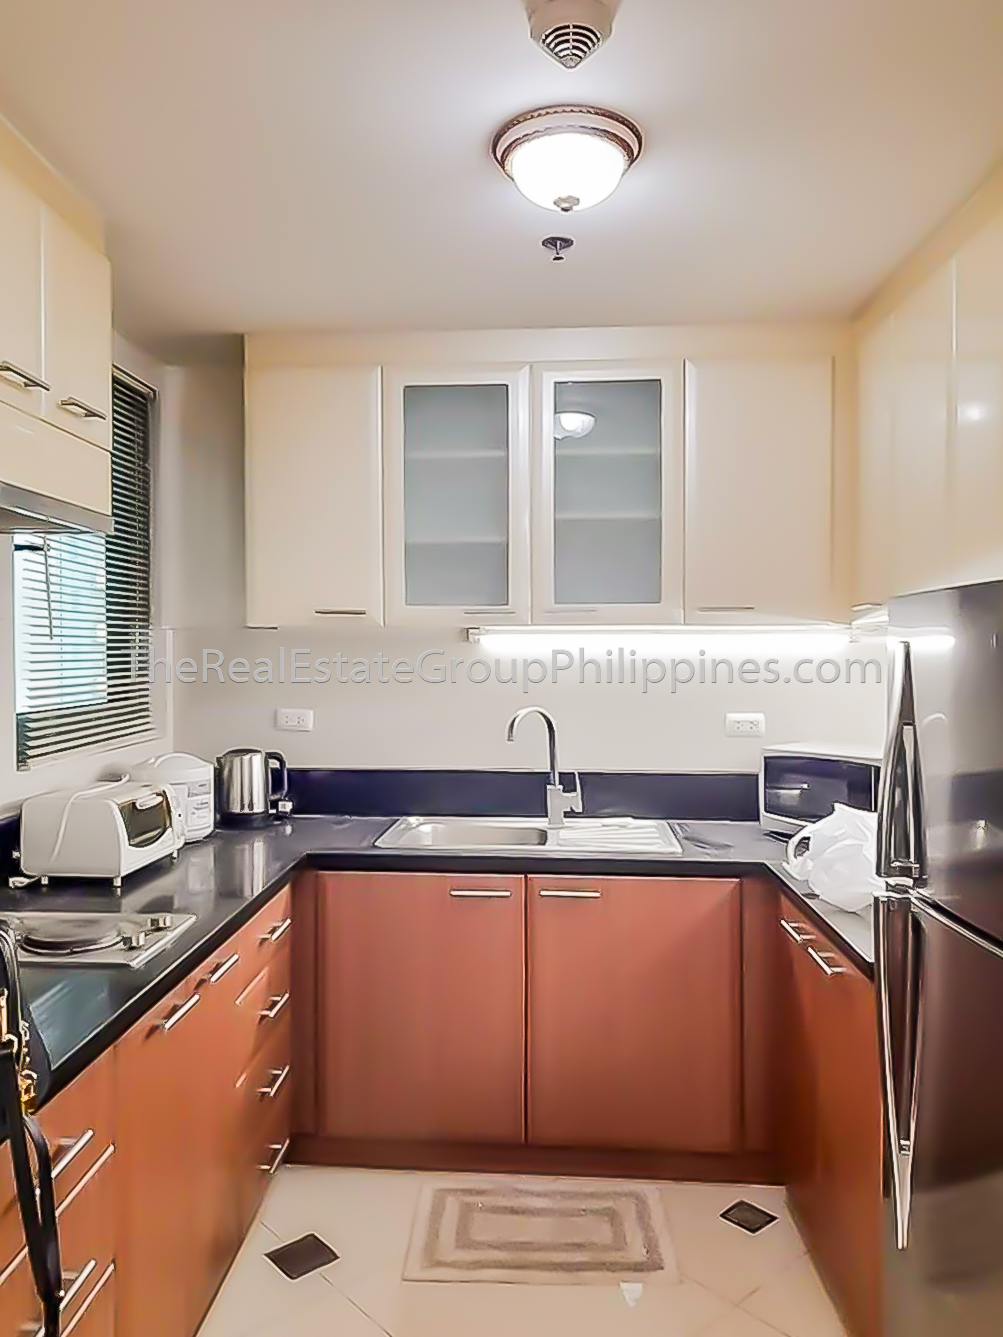 1BR Condo For Rent, 8 Forbestown Road, BGC 40K-5